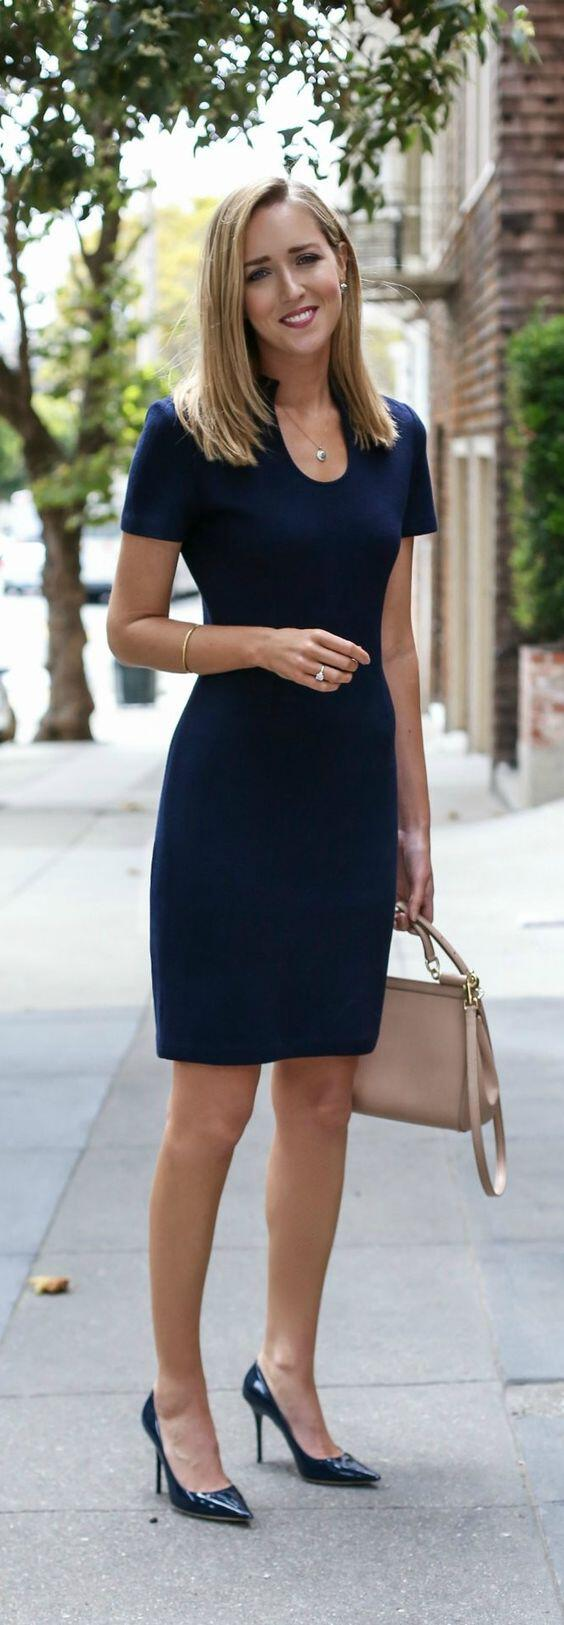 15 ways to wear a navy dress outfit and what accessories to choose 14 - 15 ways to wear a navy dress outfit and what accessories to choose